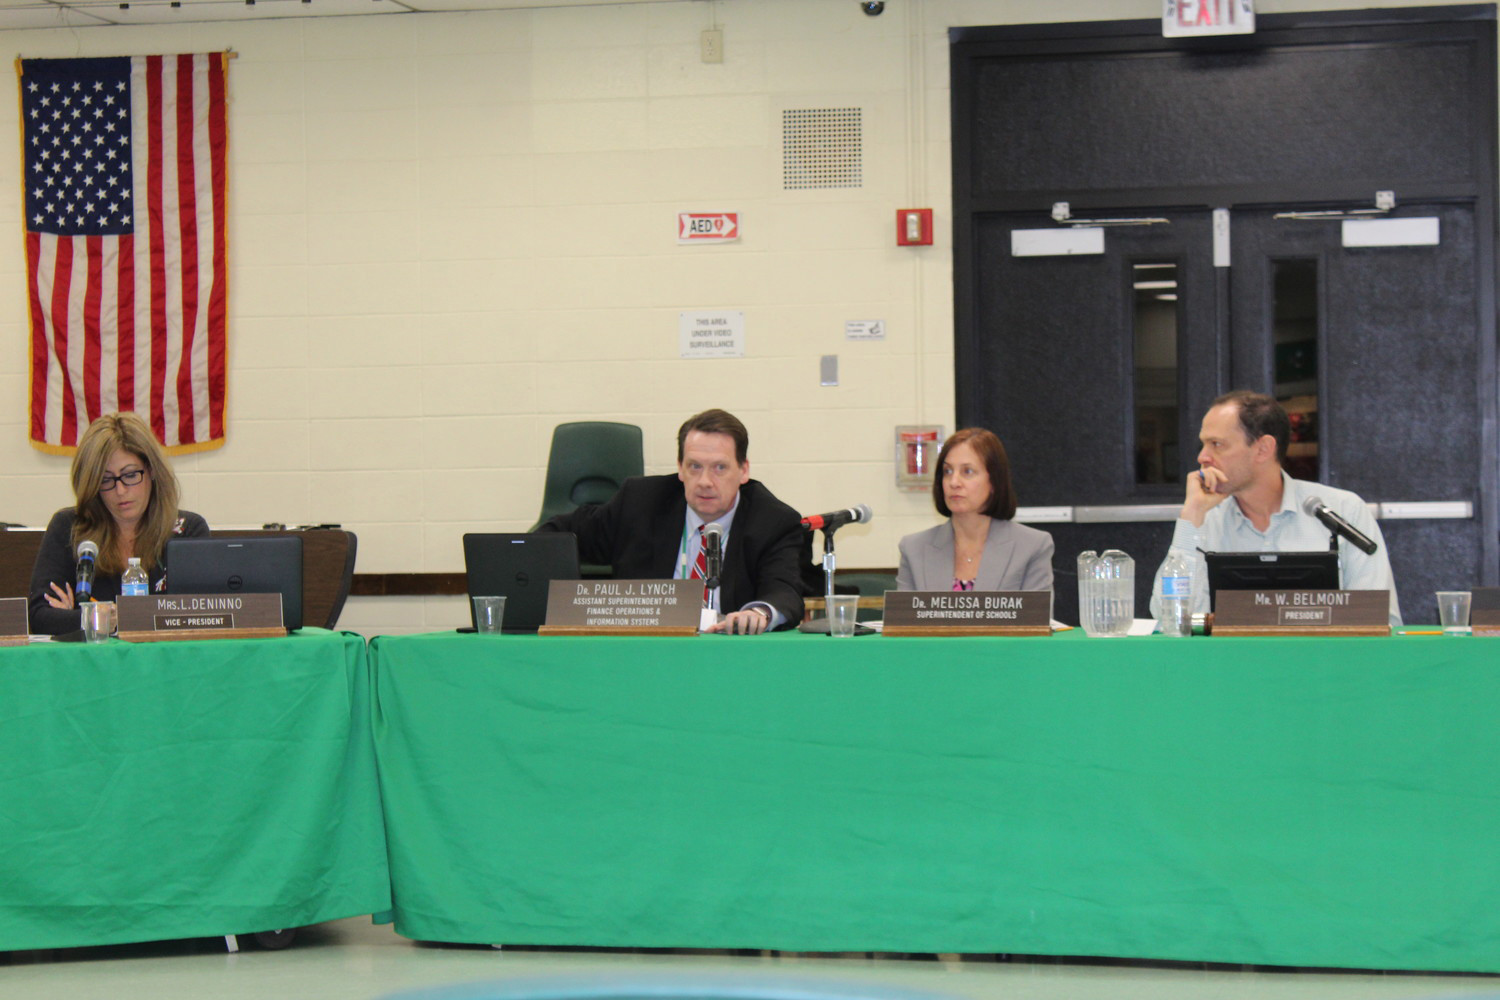 Dr. Paul Lynch, left, the Lynbrook School District's assistant superintendent for finance, operations and information systems, Superintendent Dr. Melissa Burak and Board of Education President William Belmont each said they were relieved that the State Education Department approved an $843,860 Smart Schools Investment Plan after a lengthy review process.